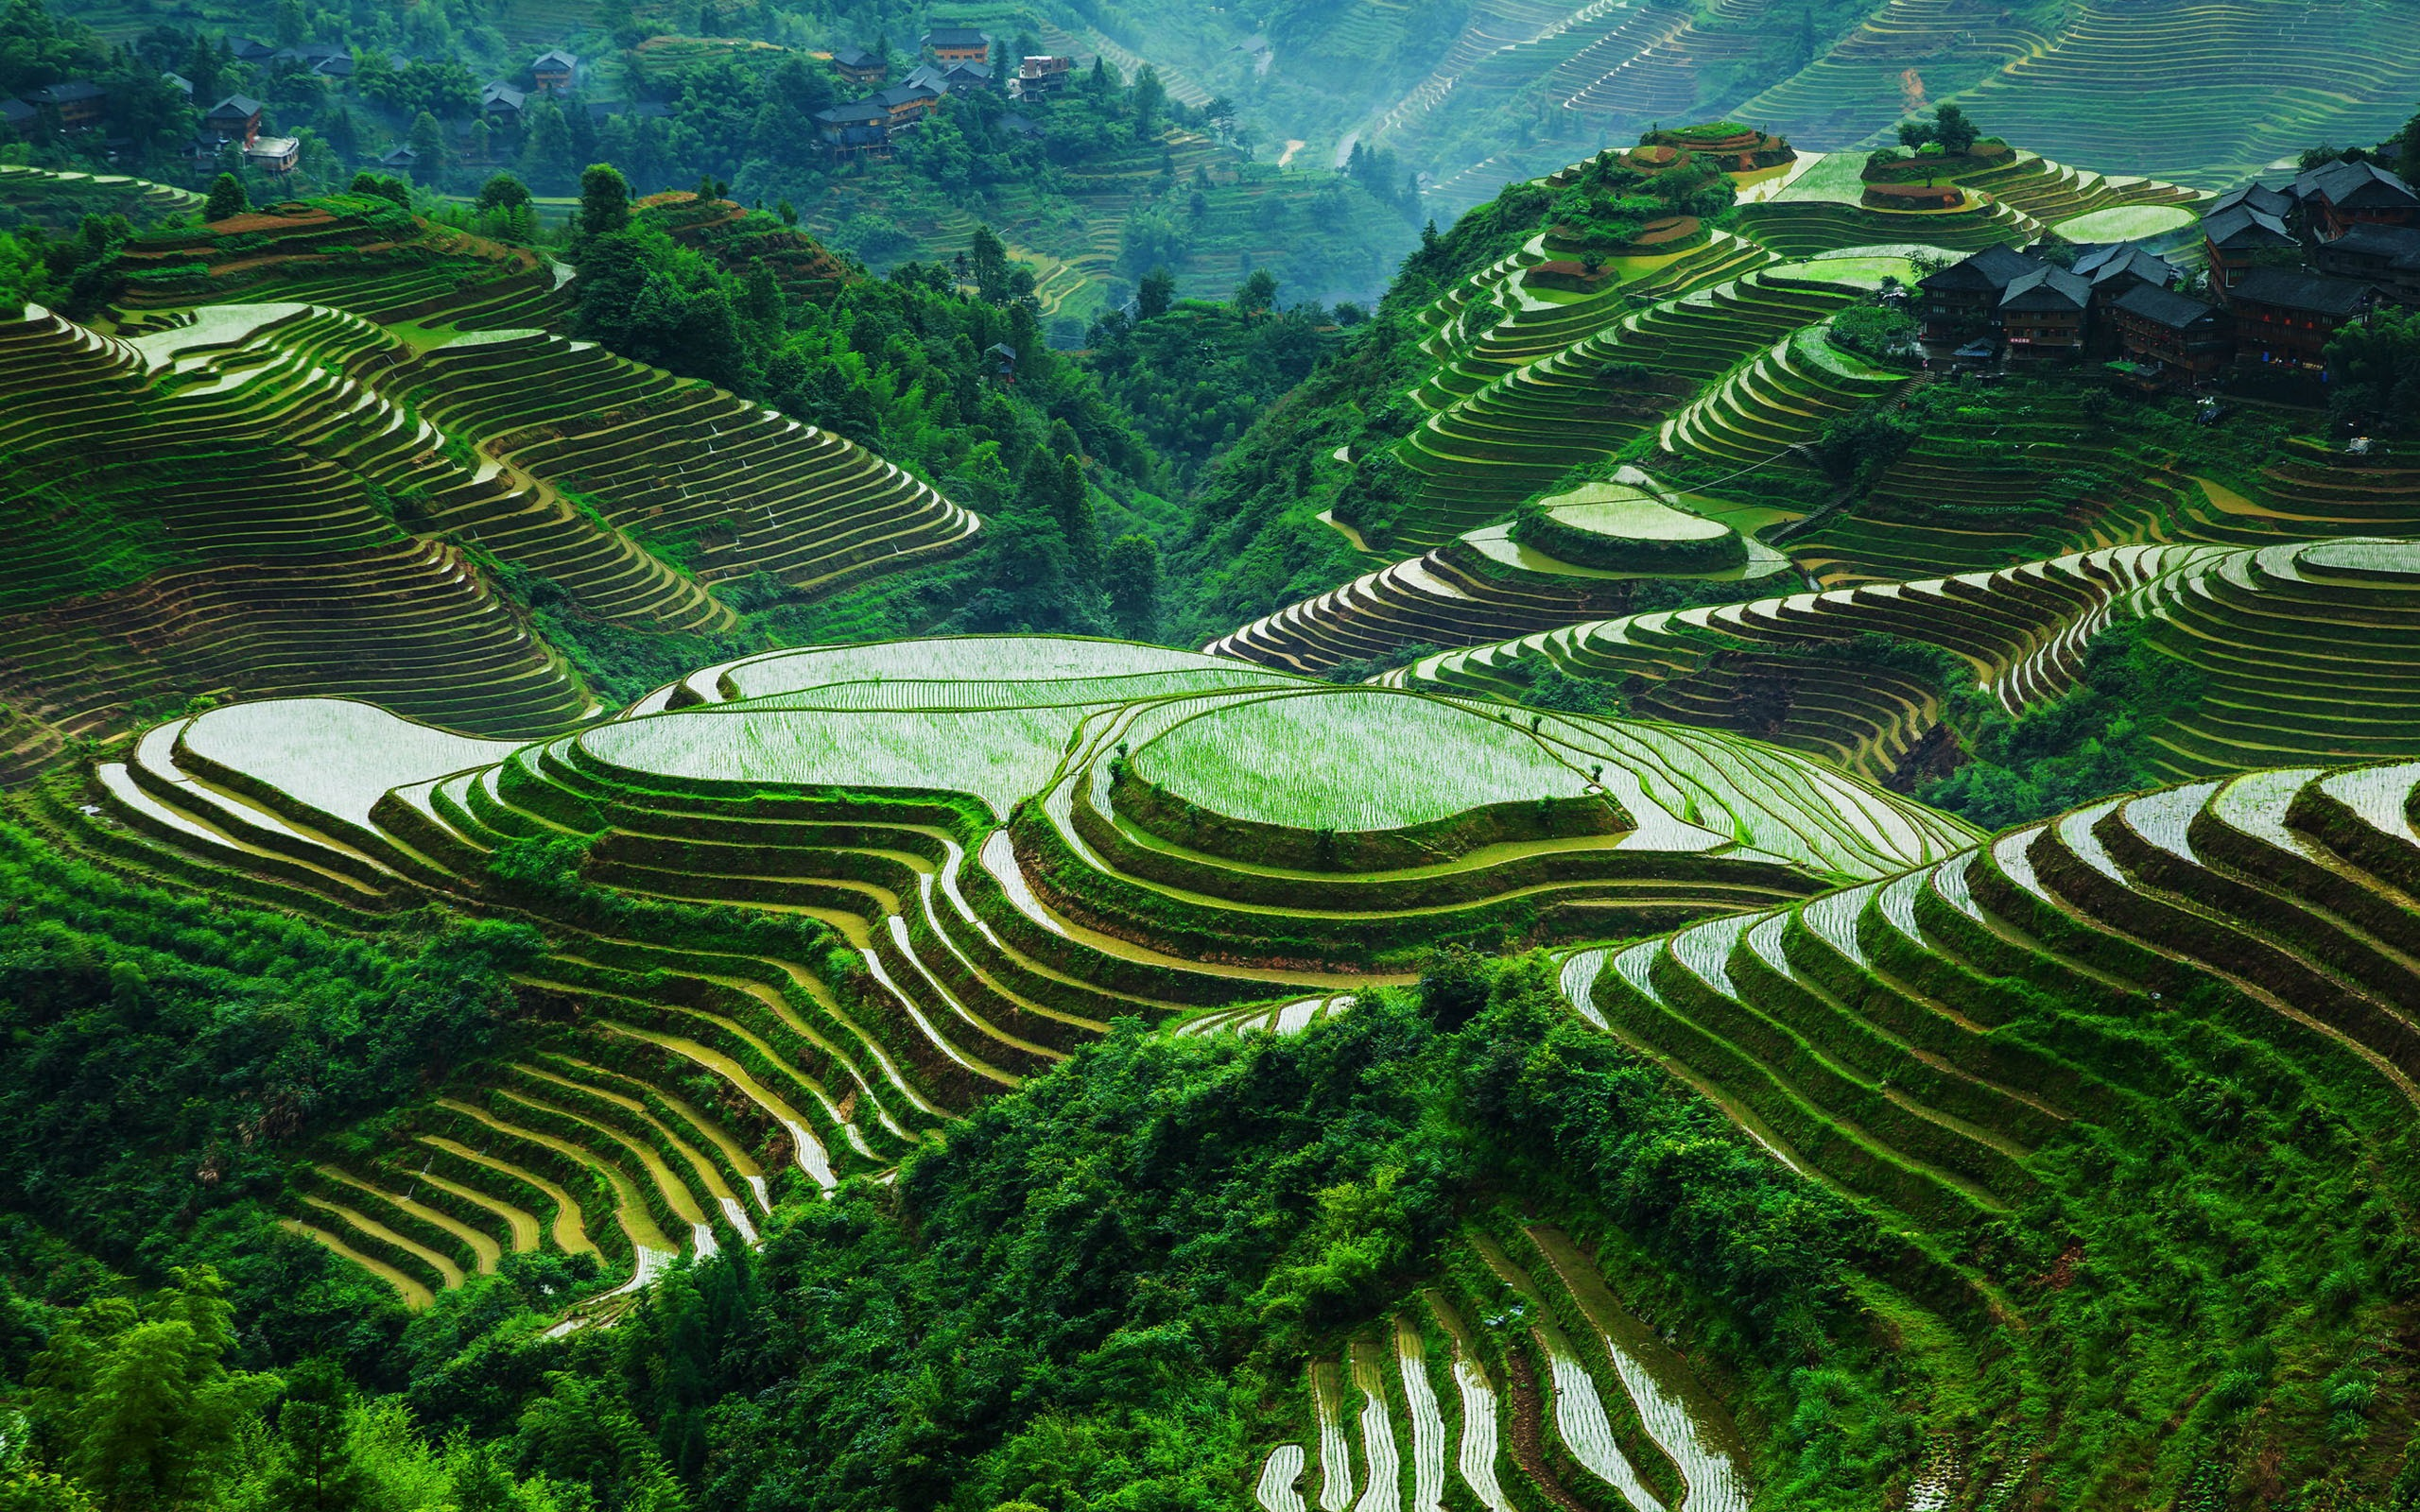 Guangxi longsheng reisterrassen sch ne landschaft china for What is terrace farming definition